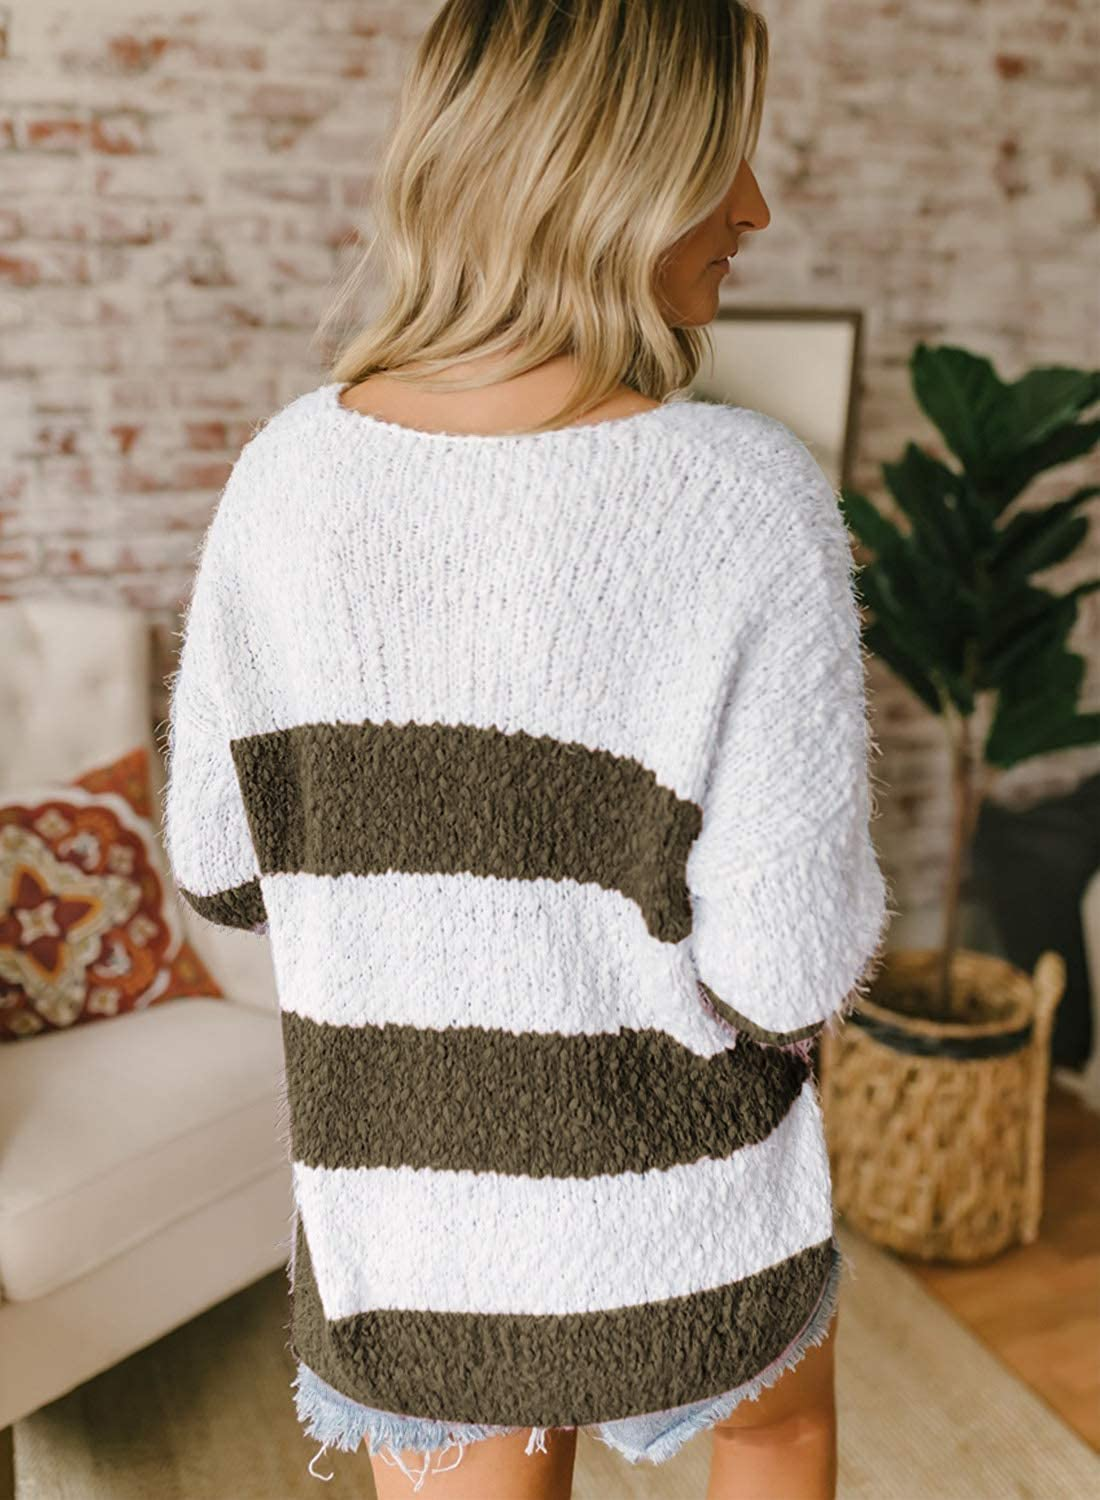 MEROKEETY Womens Long Sleeve Color Block Striped V Neck Fuzzy Knit Sweater Side Slit Pullover Tops